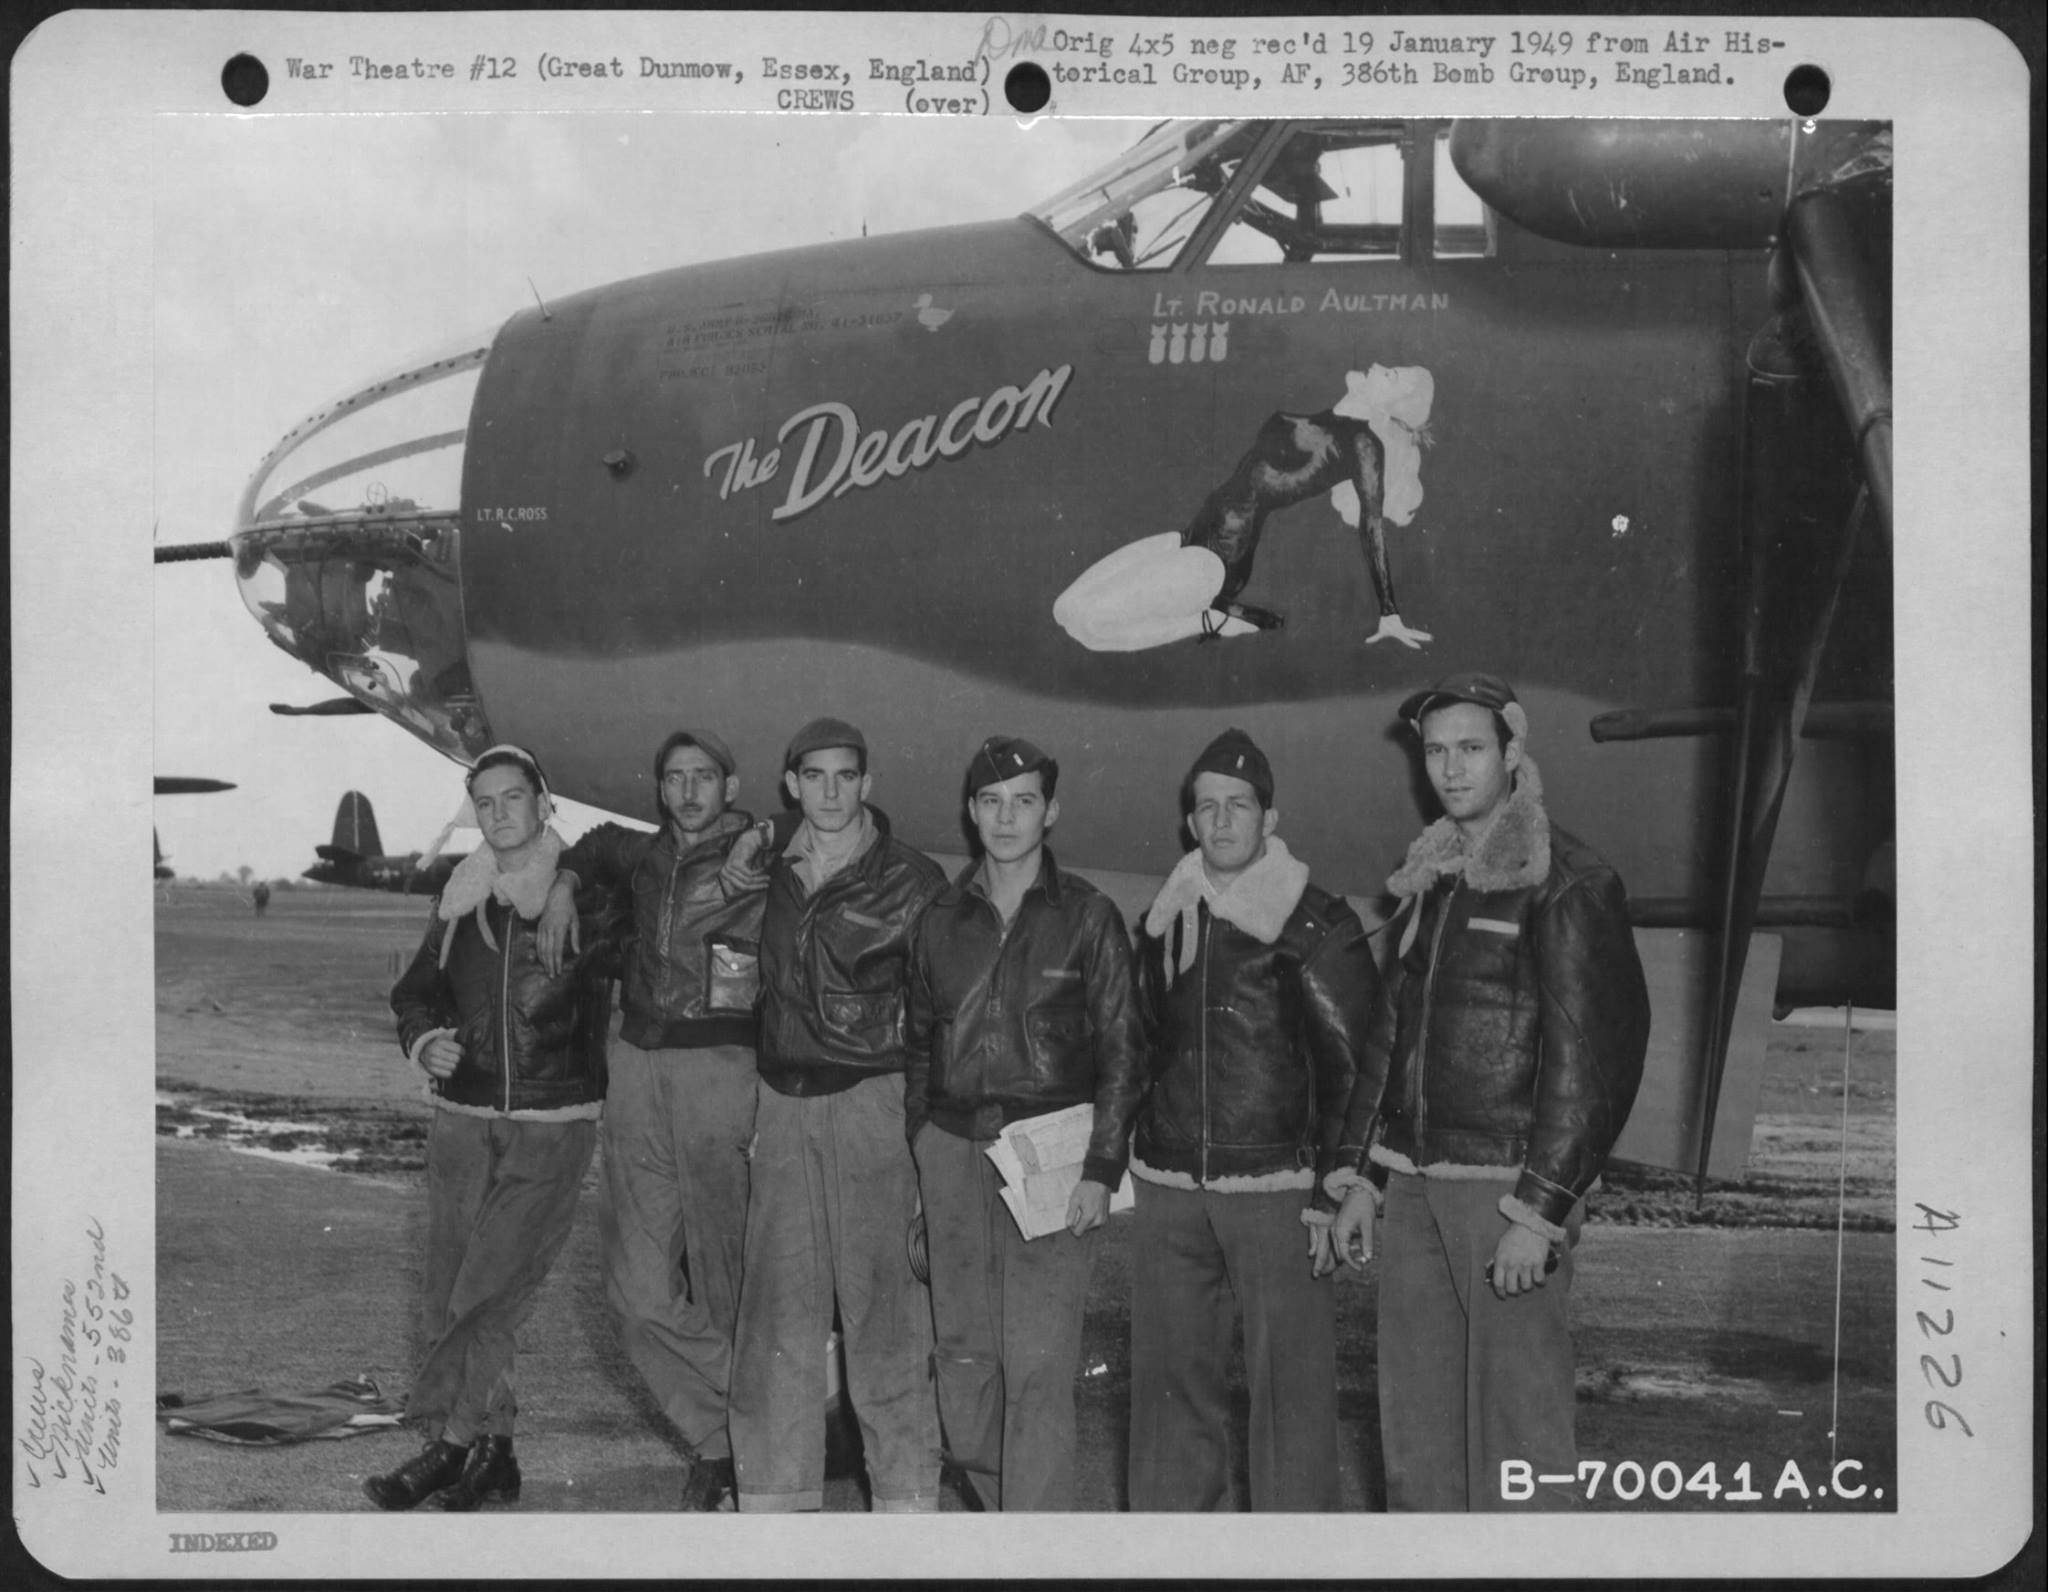 USAAF 41 31850 B 26B Marauder 386BG552BS RGS The Deacon with crew Great Dunmow Essex England 2 Sep 1943 01